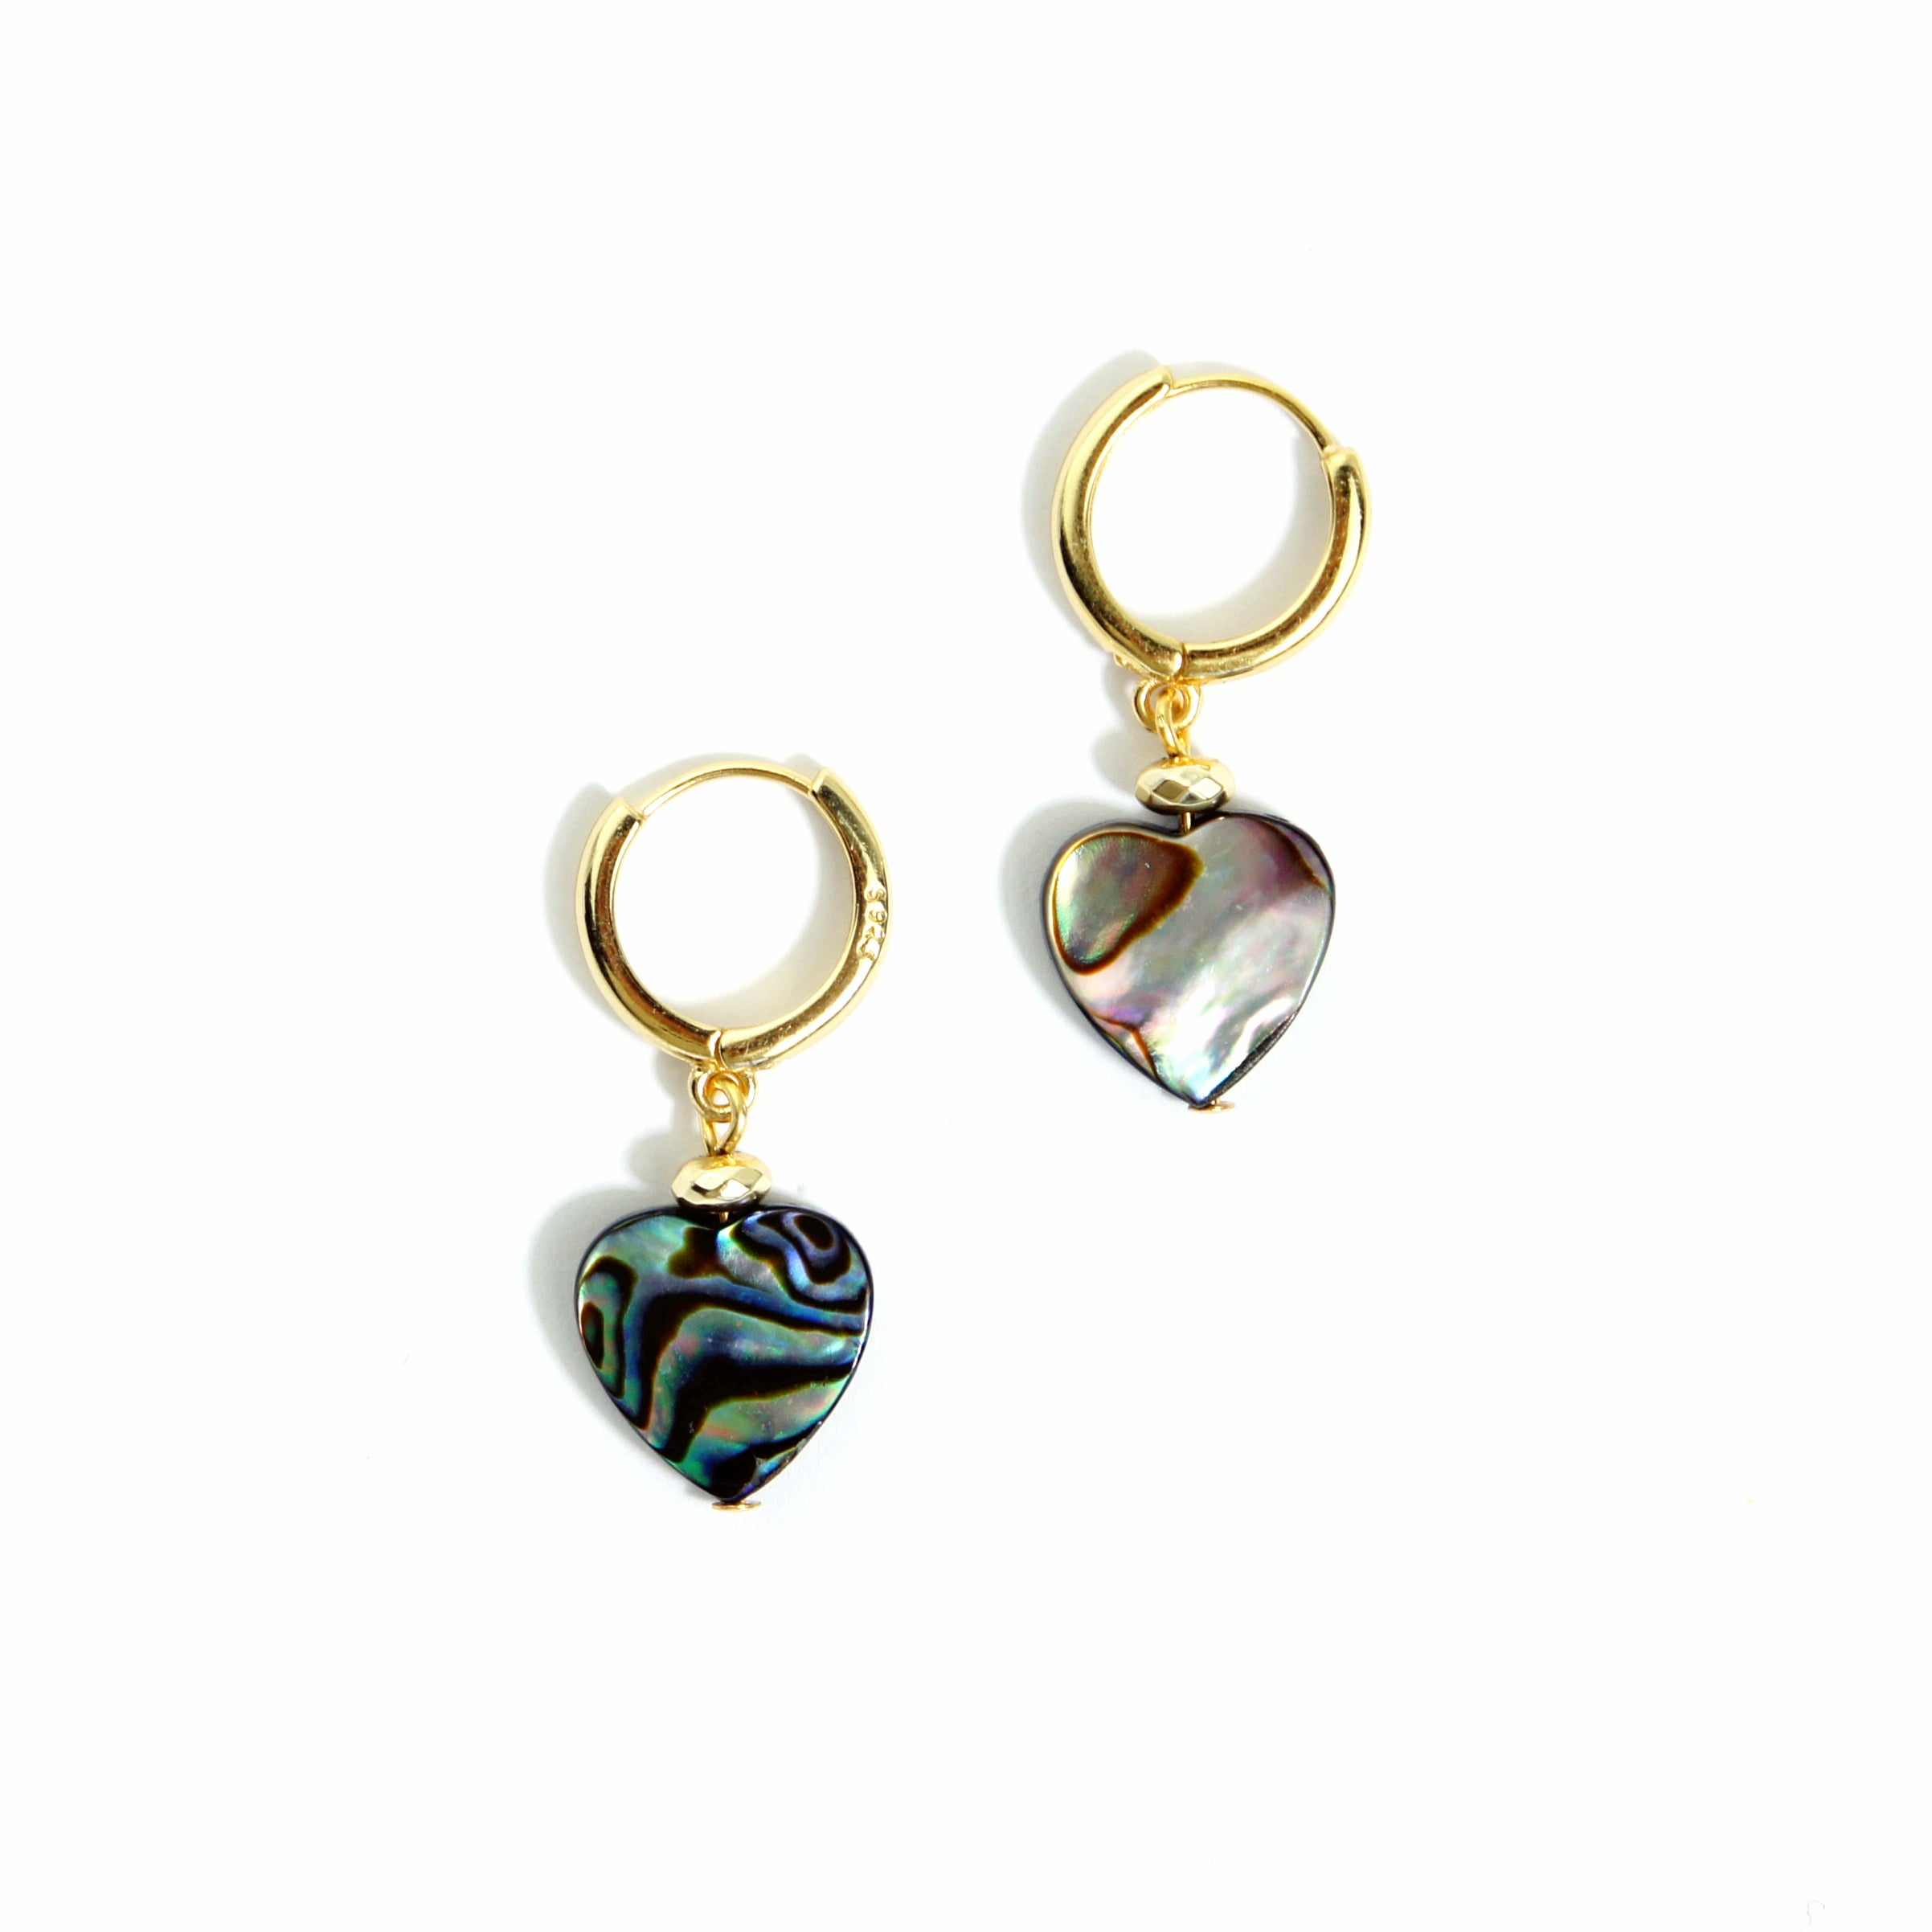 Amoretti 18K Gold Vermeil Huggie Hoop Earrings w/Mother of Pearl Heart Charm